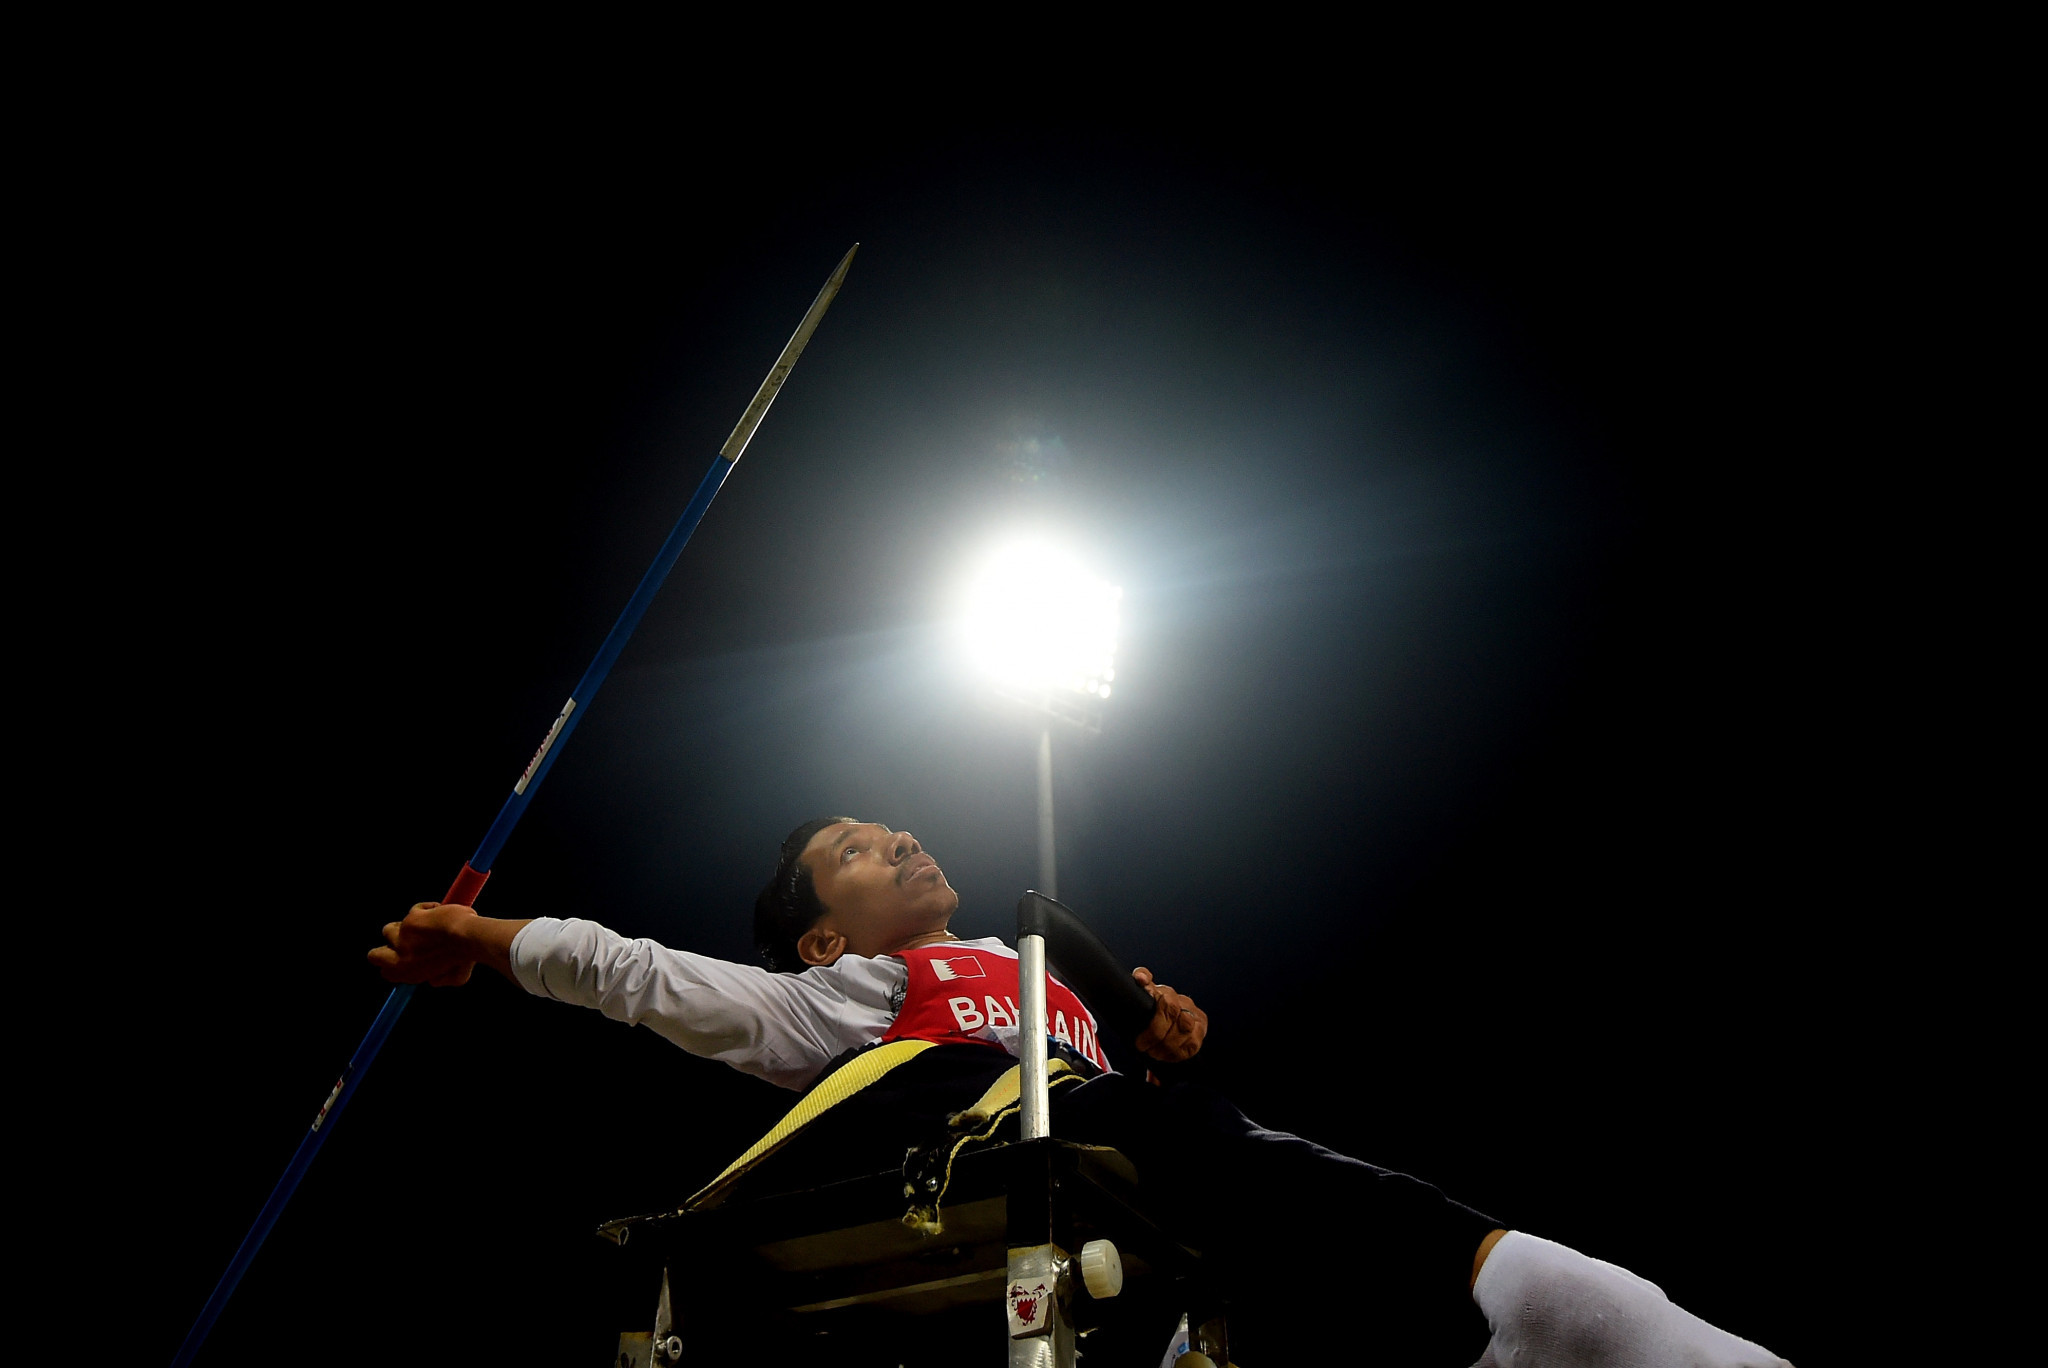 The Bahrain Paralympic Committee signed a host city agreement for the Asian Youth Para Games ©Getty Images